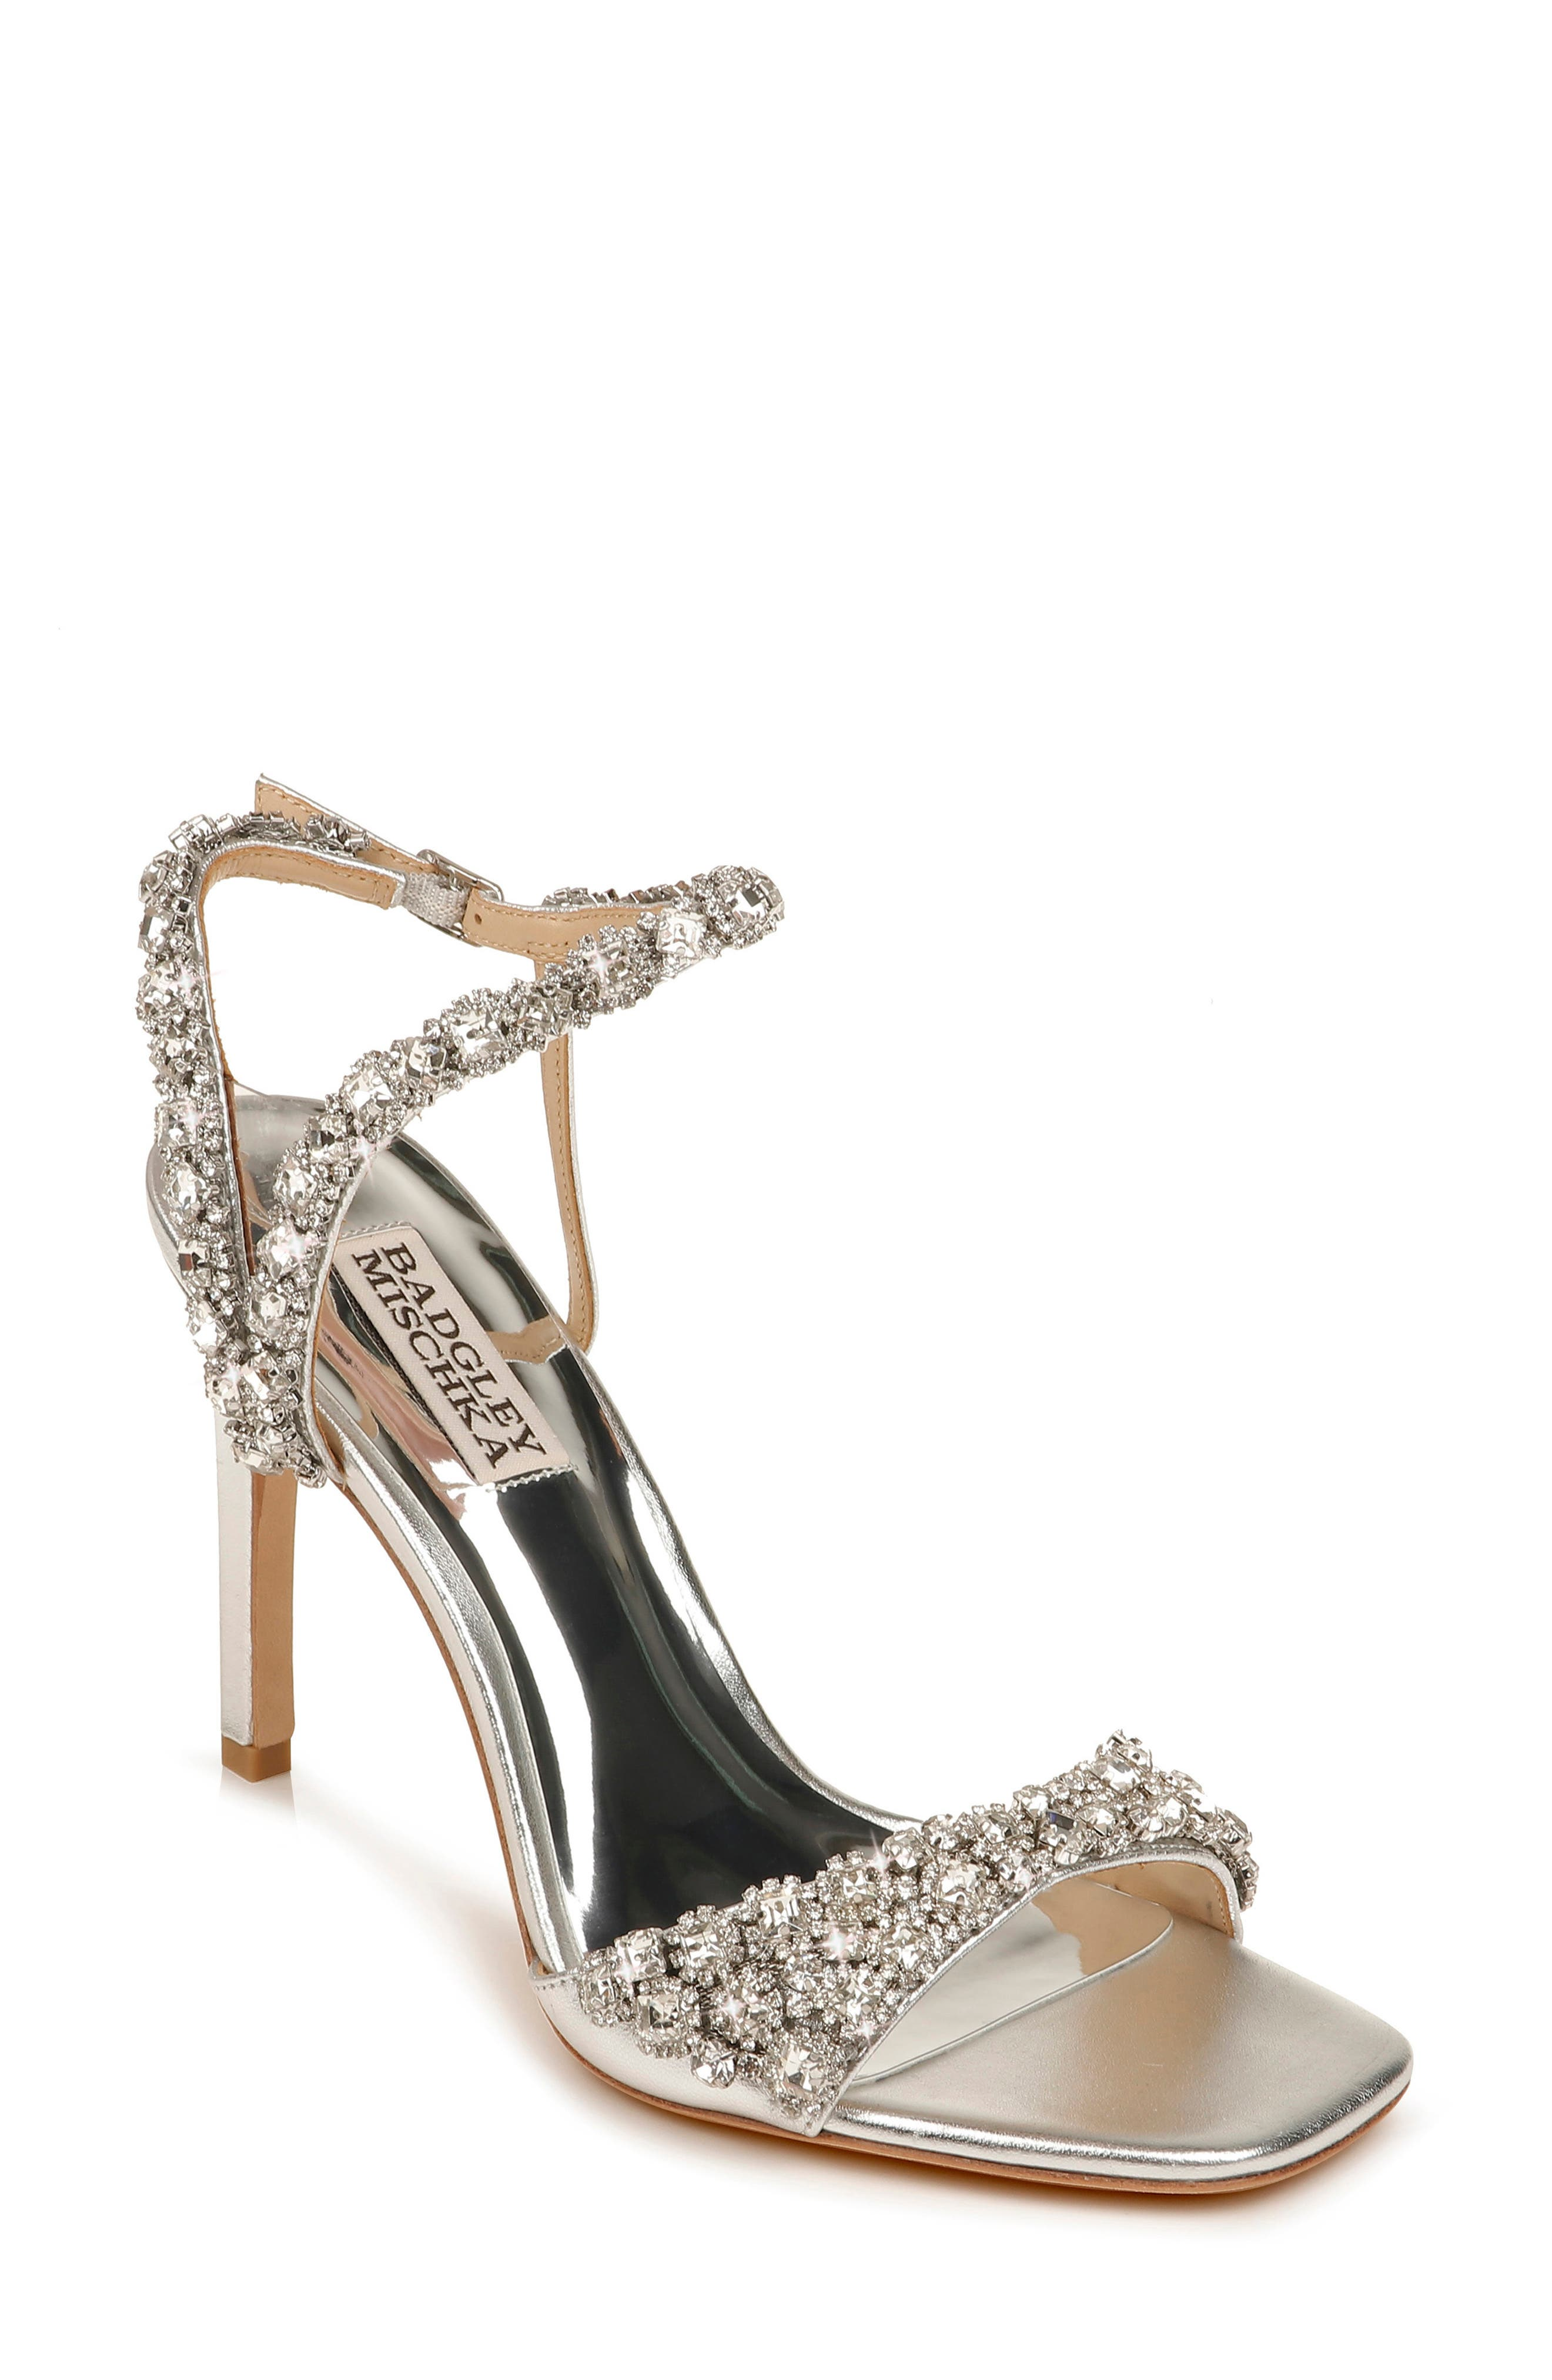 Sparkling crystals embellish the straps of an elegant sandal lifted by a metallic setback heel. Style Name: Badgley Mischka Galia Embellished Sandal (Women). Style Number: 6036685. Available in stores.